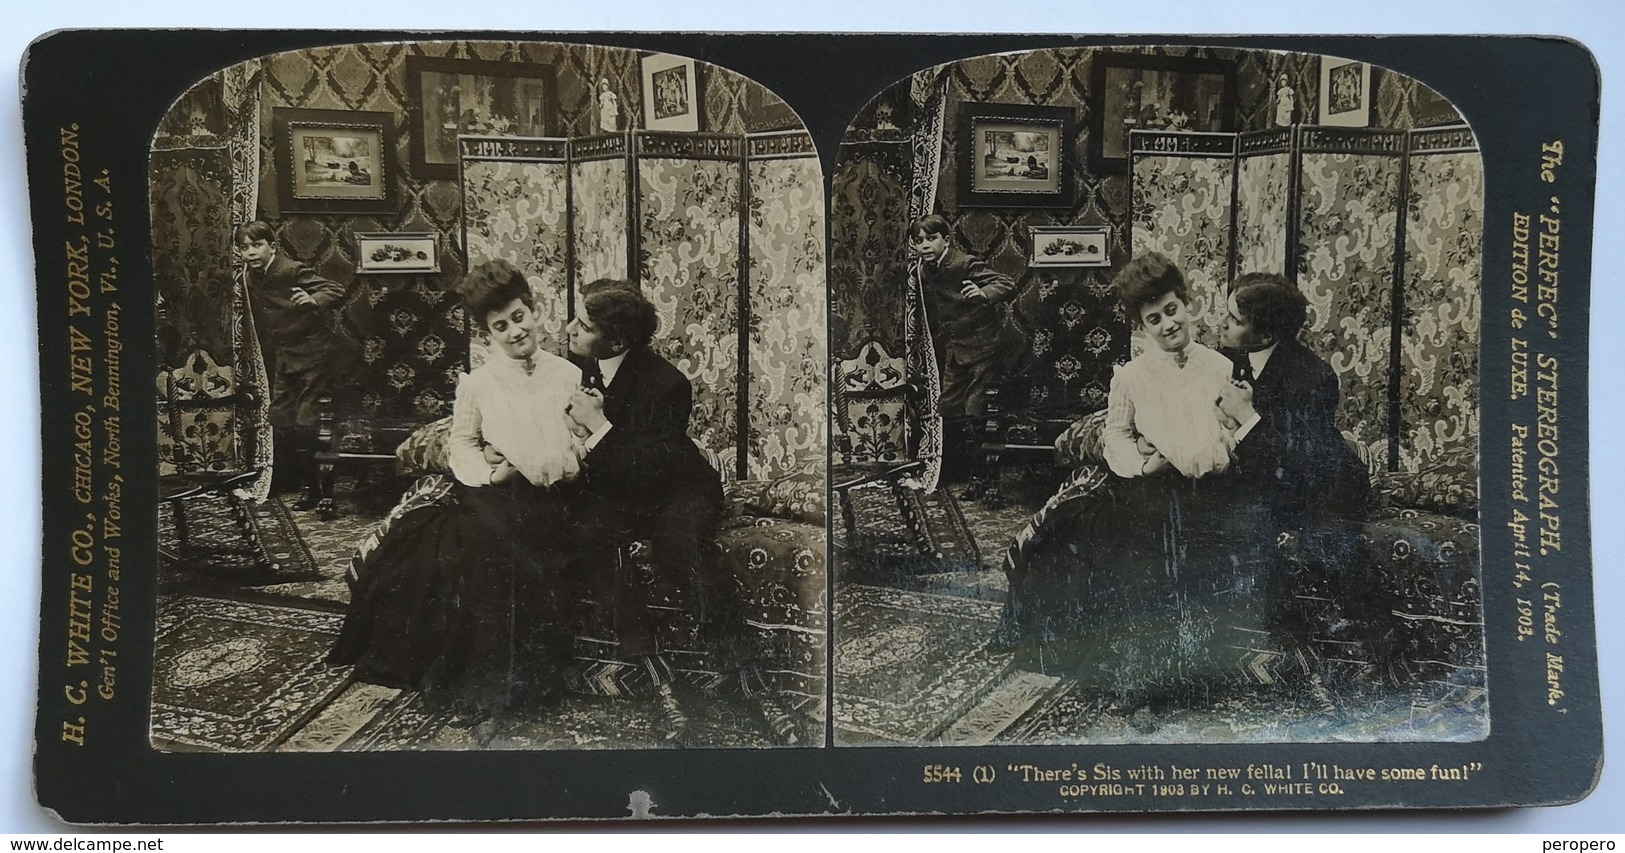 PHOTO STEREOSCOPIC STEREO COUPLE FASHION 1903. - Stereo-Photographie